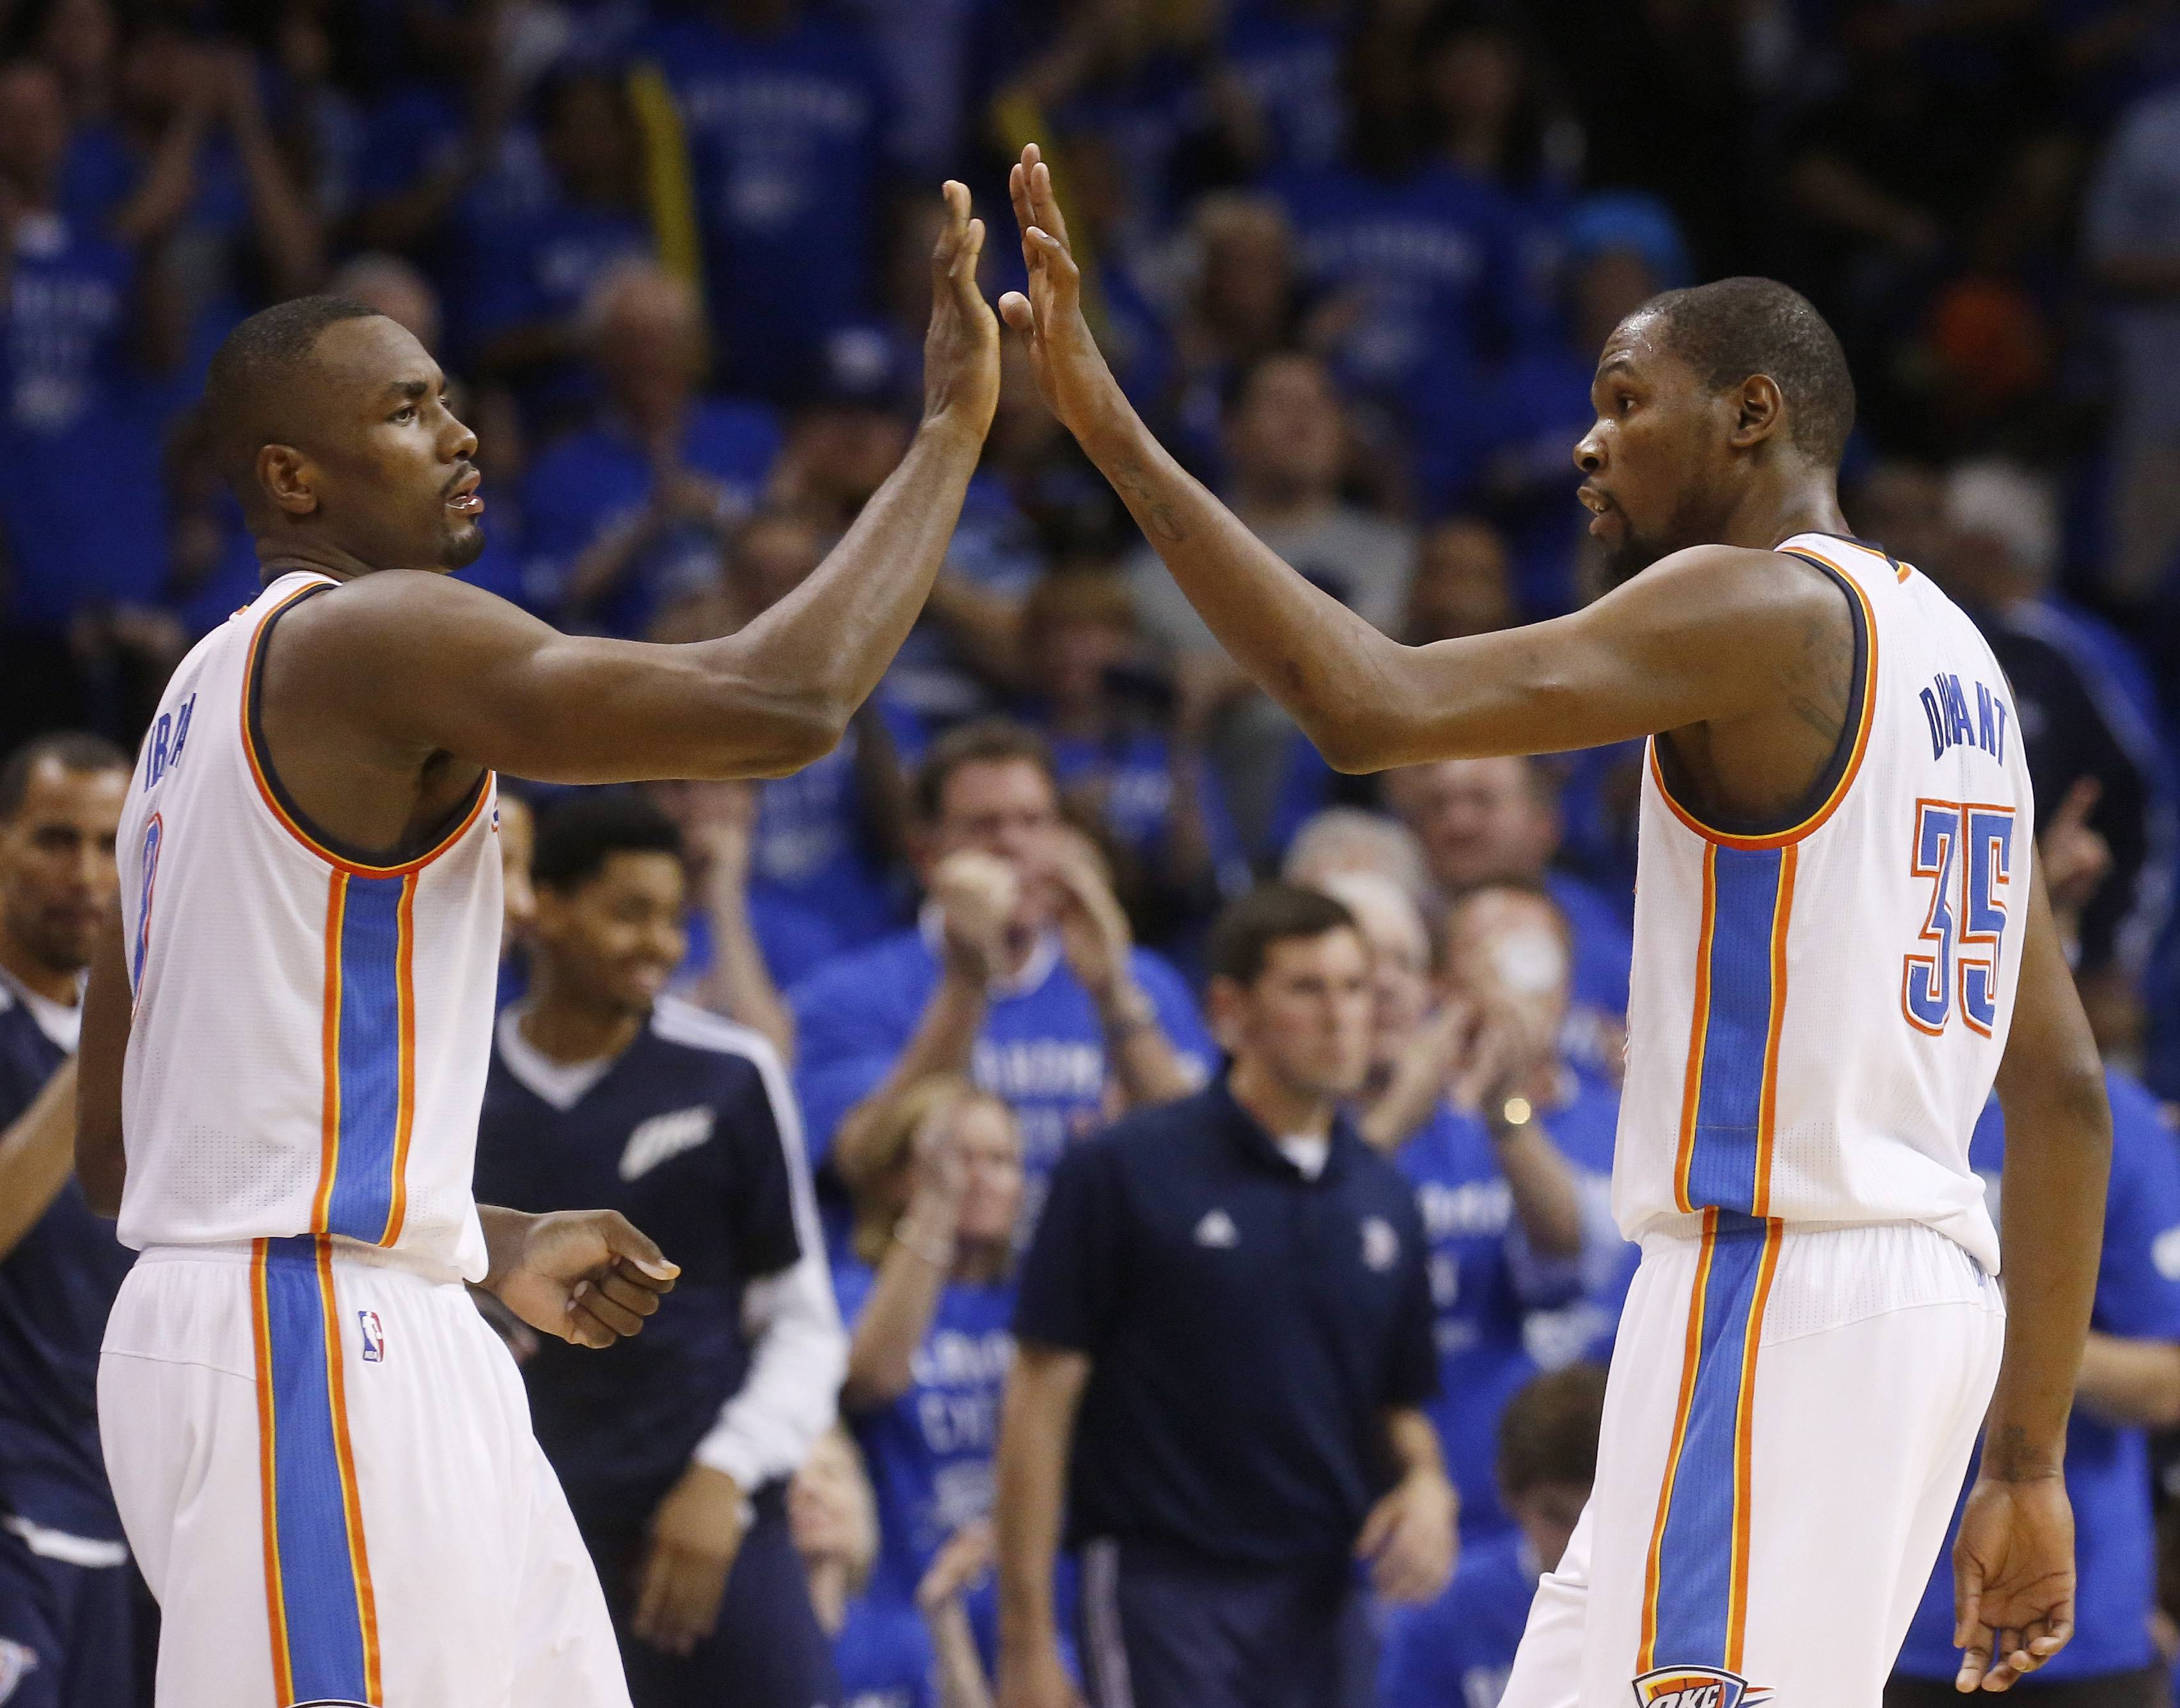 Oklahoma City Thunder forward Serge Ibaka (9) and forward Kevin Durant (35) exchange high-fives in the fourth quarter of Game 3 of an NBA basketball playoff series in the Western Conference finals against the San Antonio Spurs, Sunday, May 25, 2014, in Oklahoma City. Oklahoma City won 106-97. Durant scored 25 points and 10 rebounds. Ibaka had 15 points.